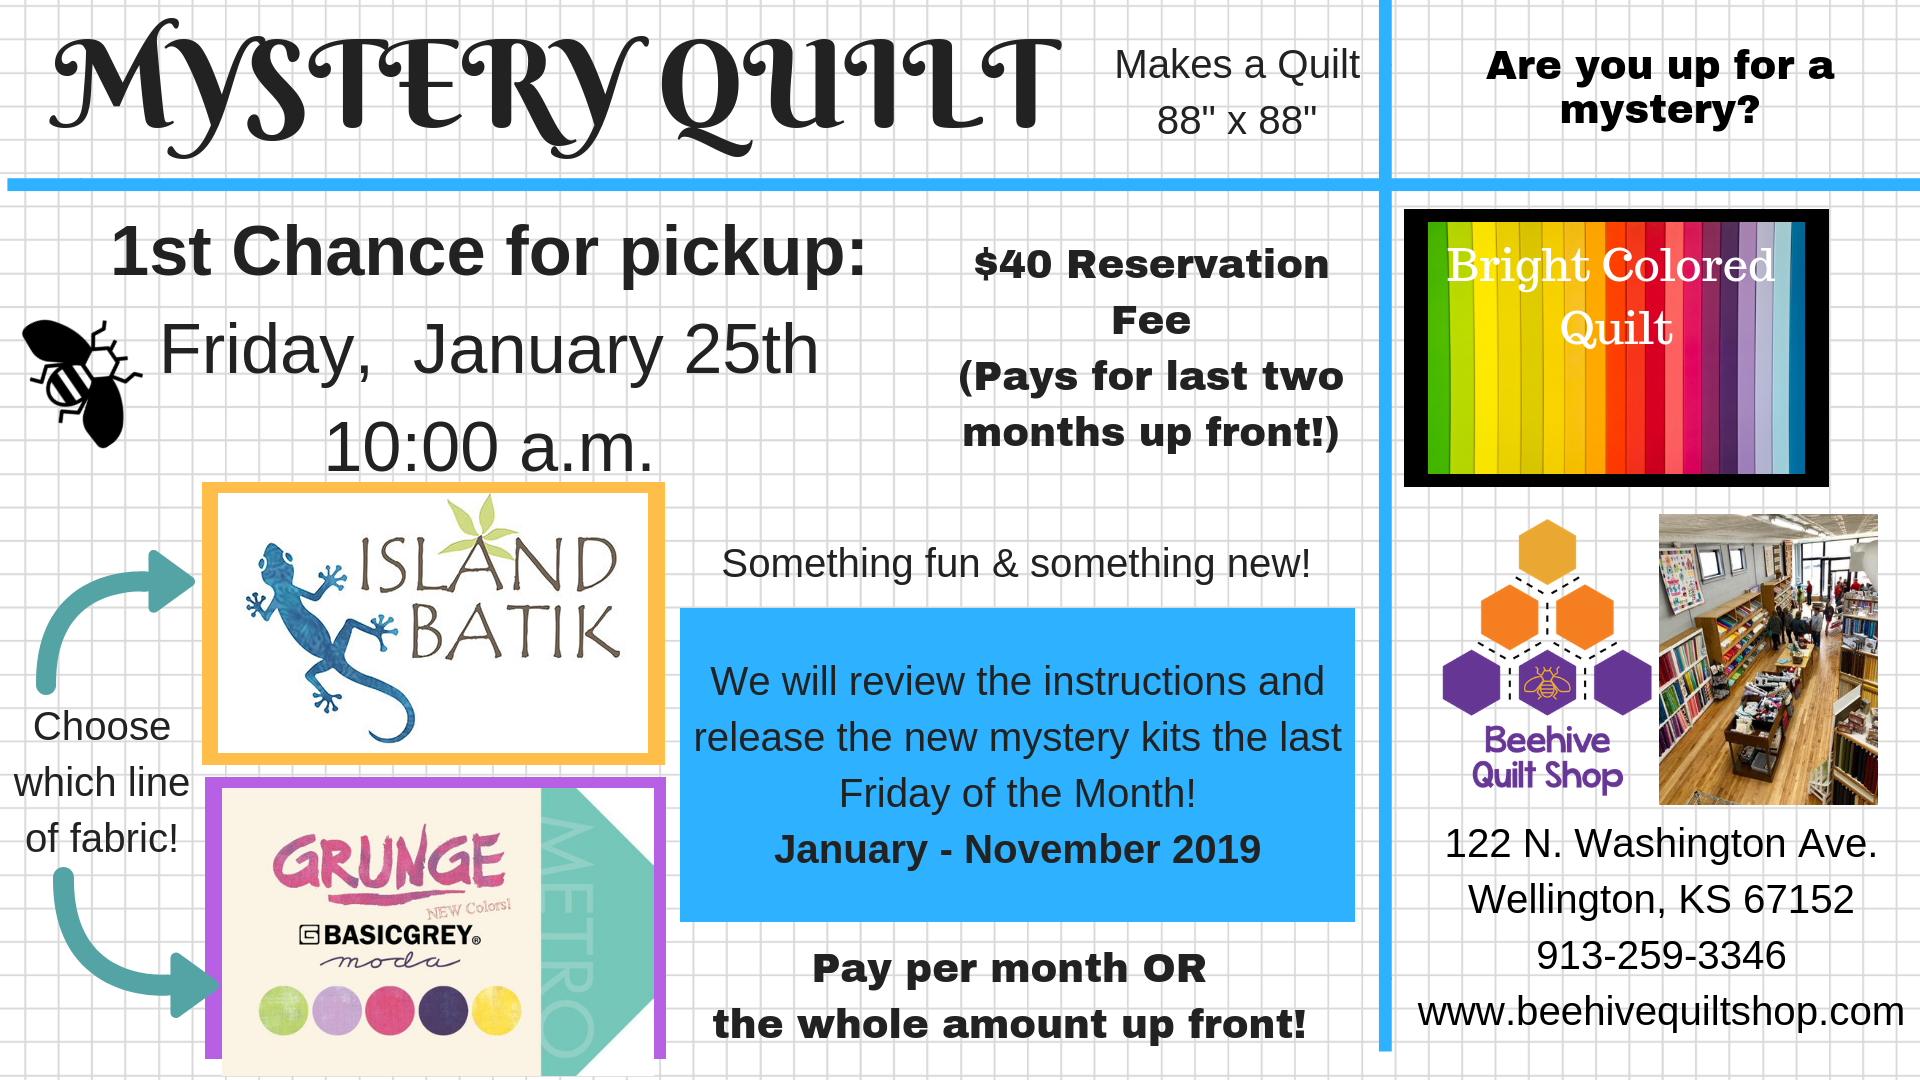 Reservation Fee - Grunge - Mystery Quilt 2019